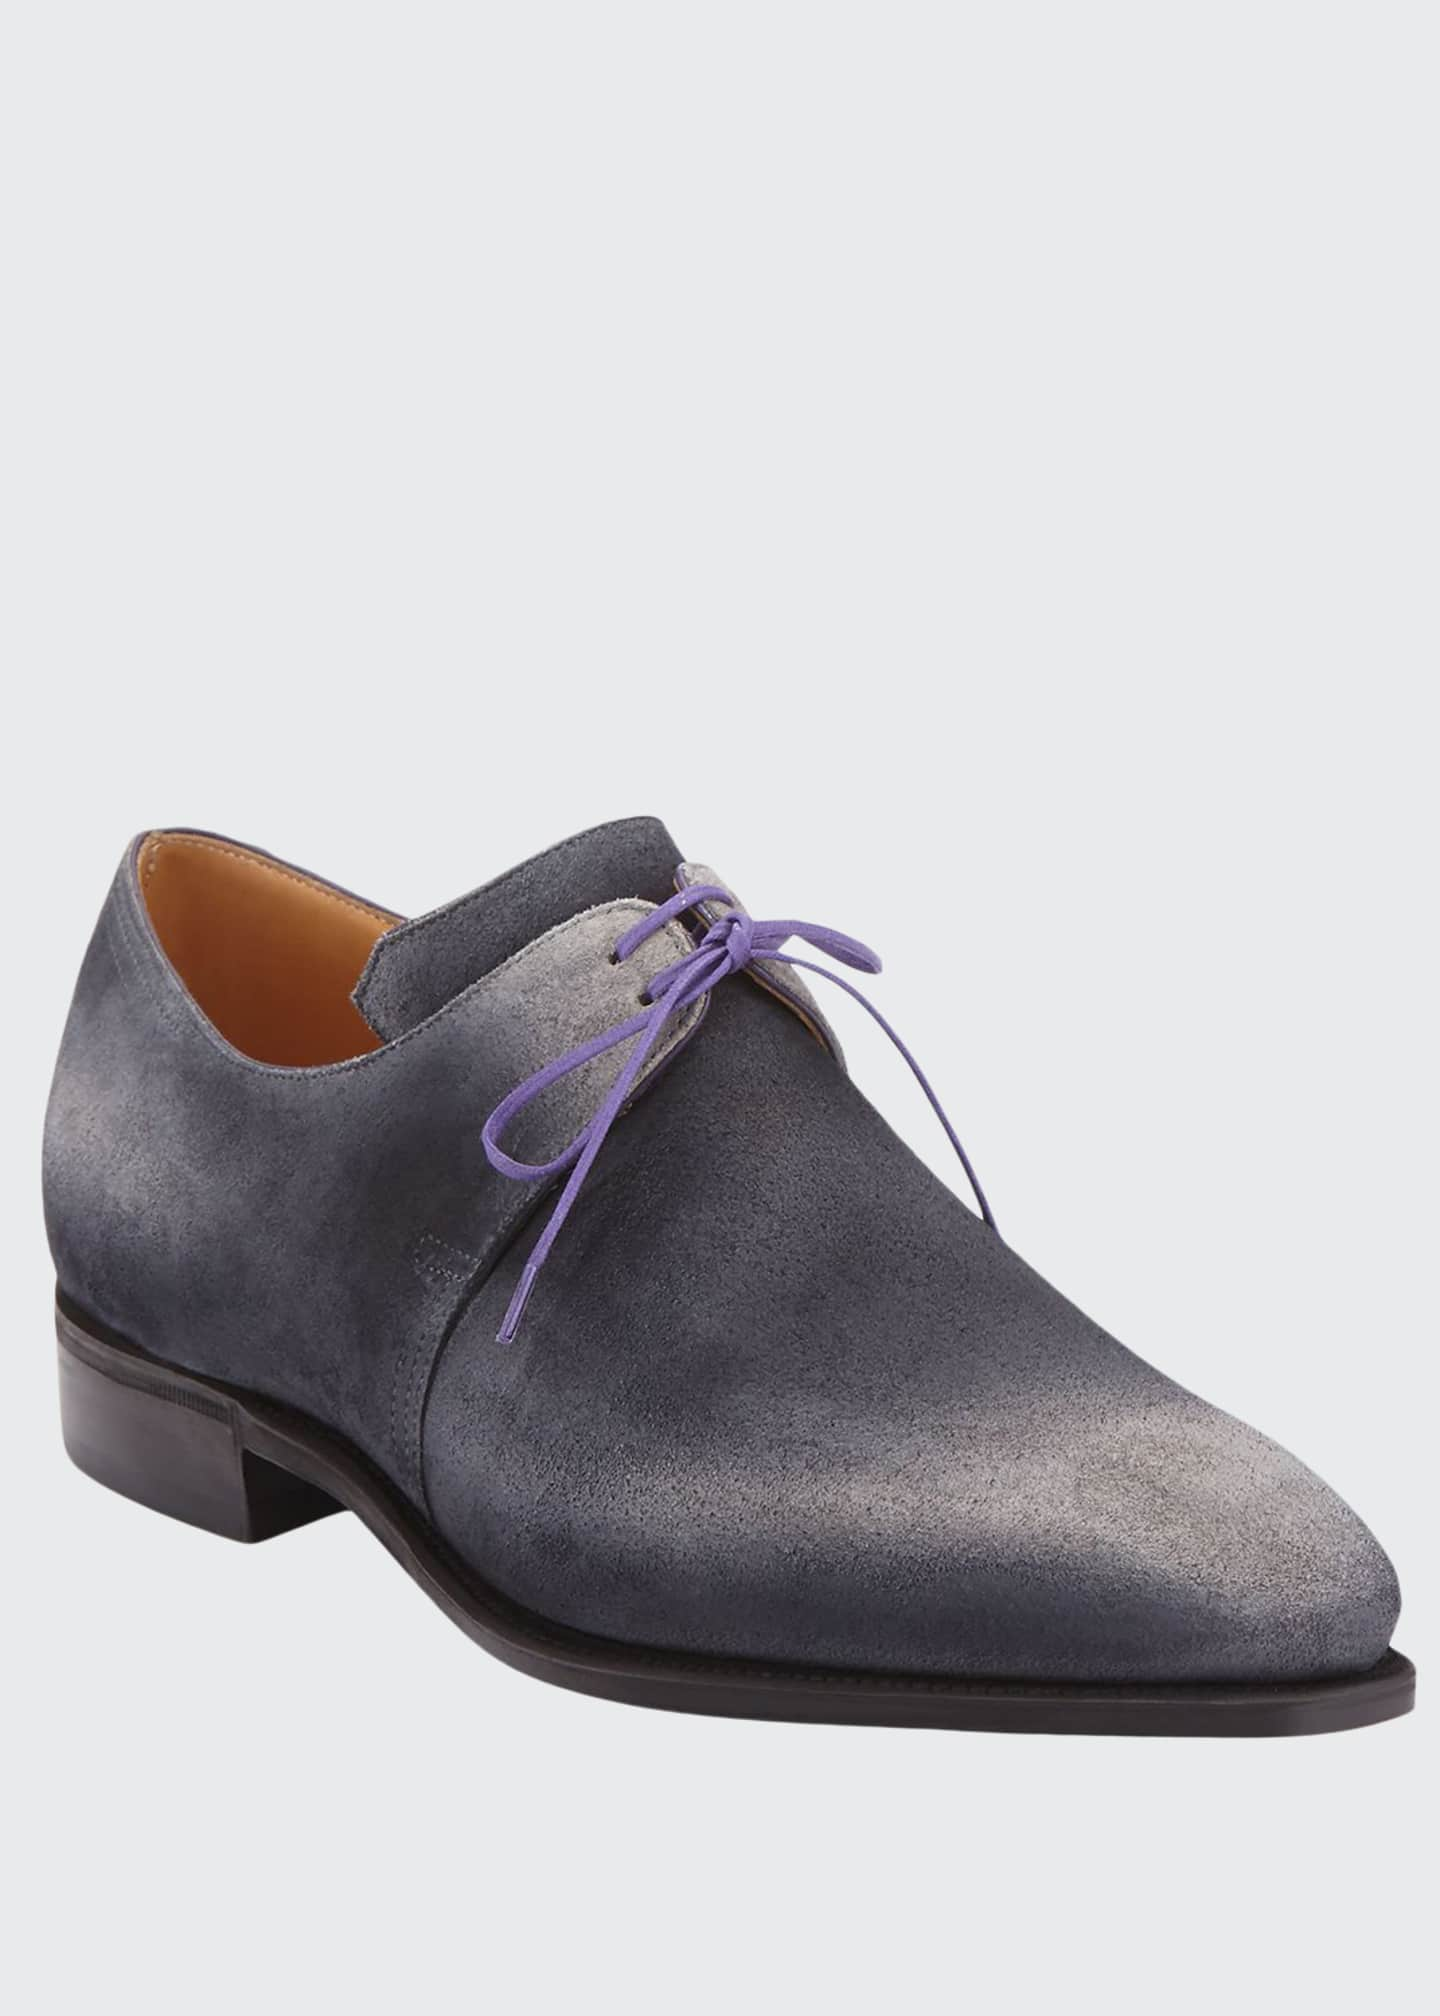 Corthay Arca Suede Derby Shoe with Flint Patina